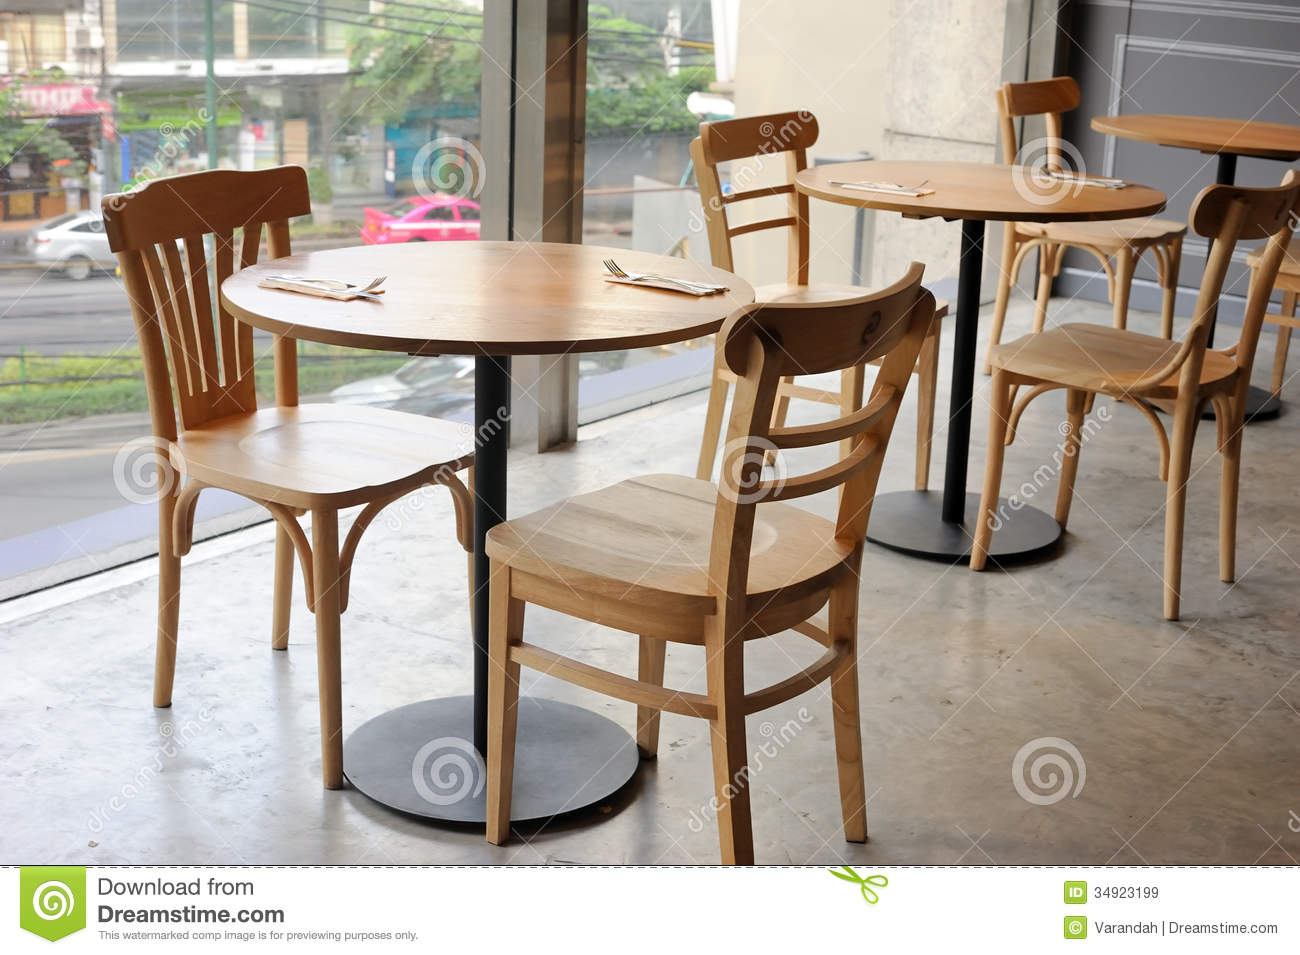 Wooden Chair And Table In Cafe Near Glass Wall